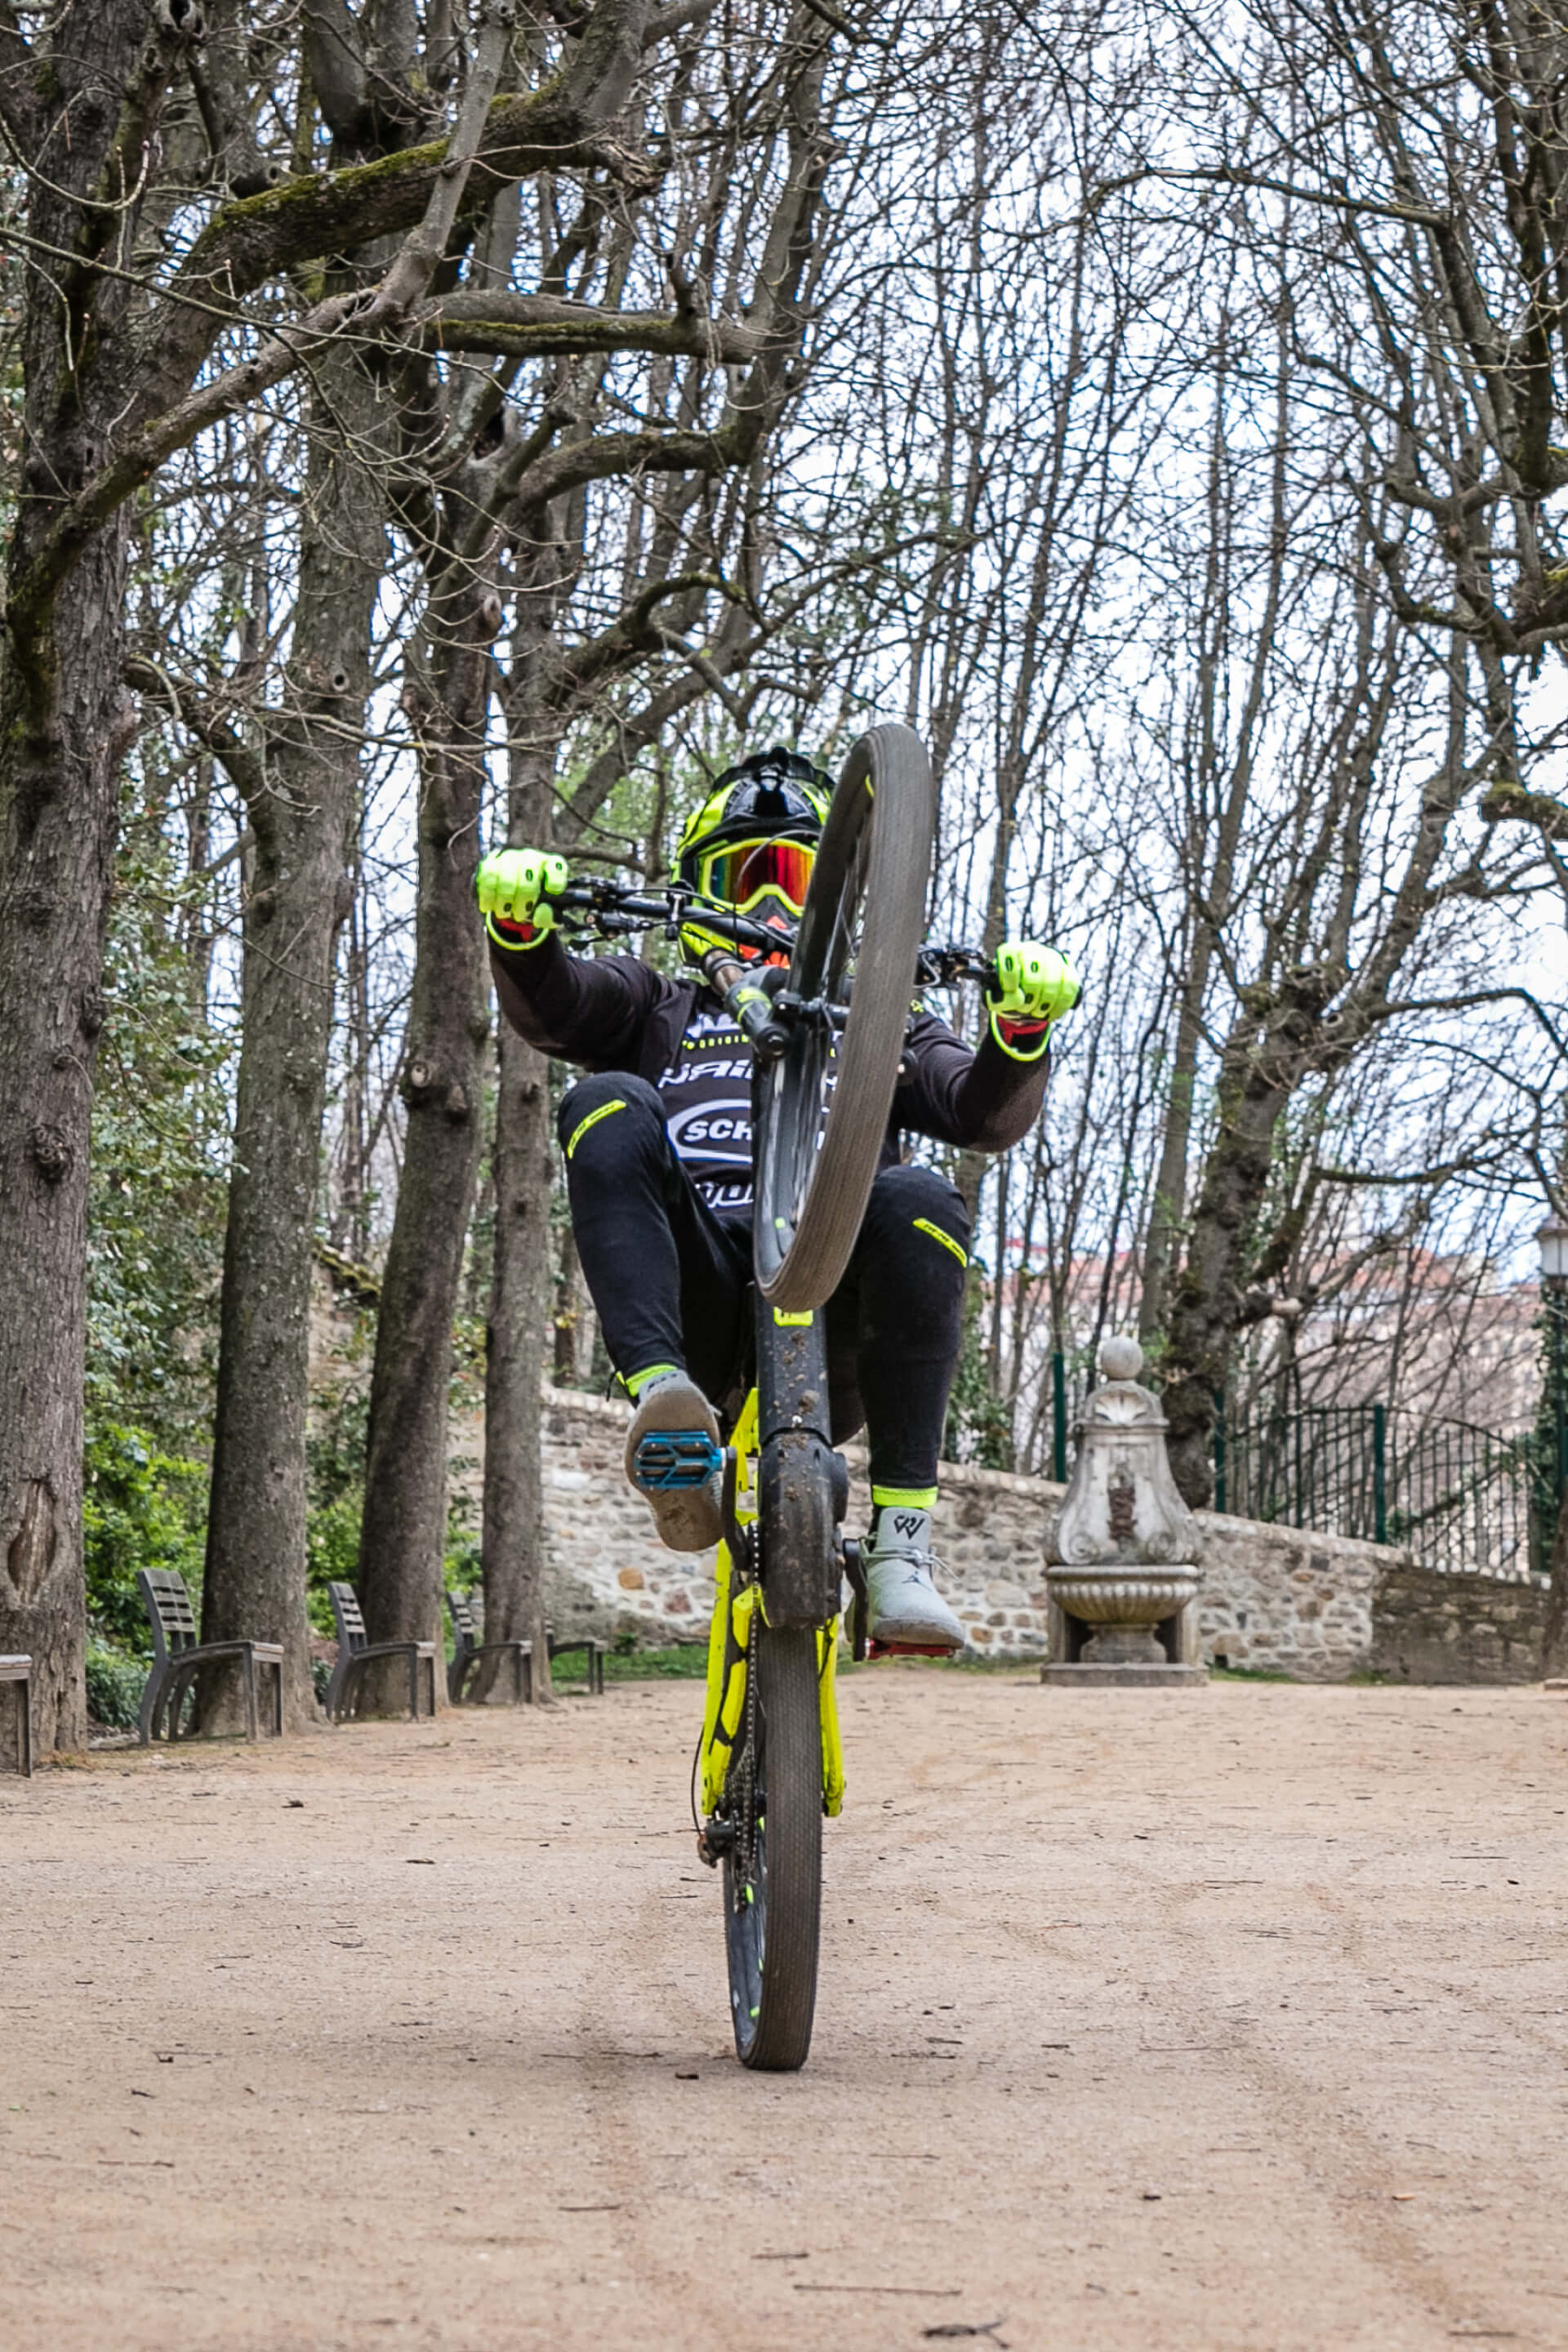 Haibike Hero Tom Barrer on his Dwnhll 9.0 eMTB doing a Wheelie